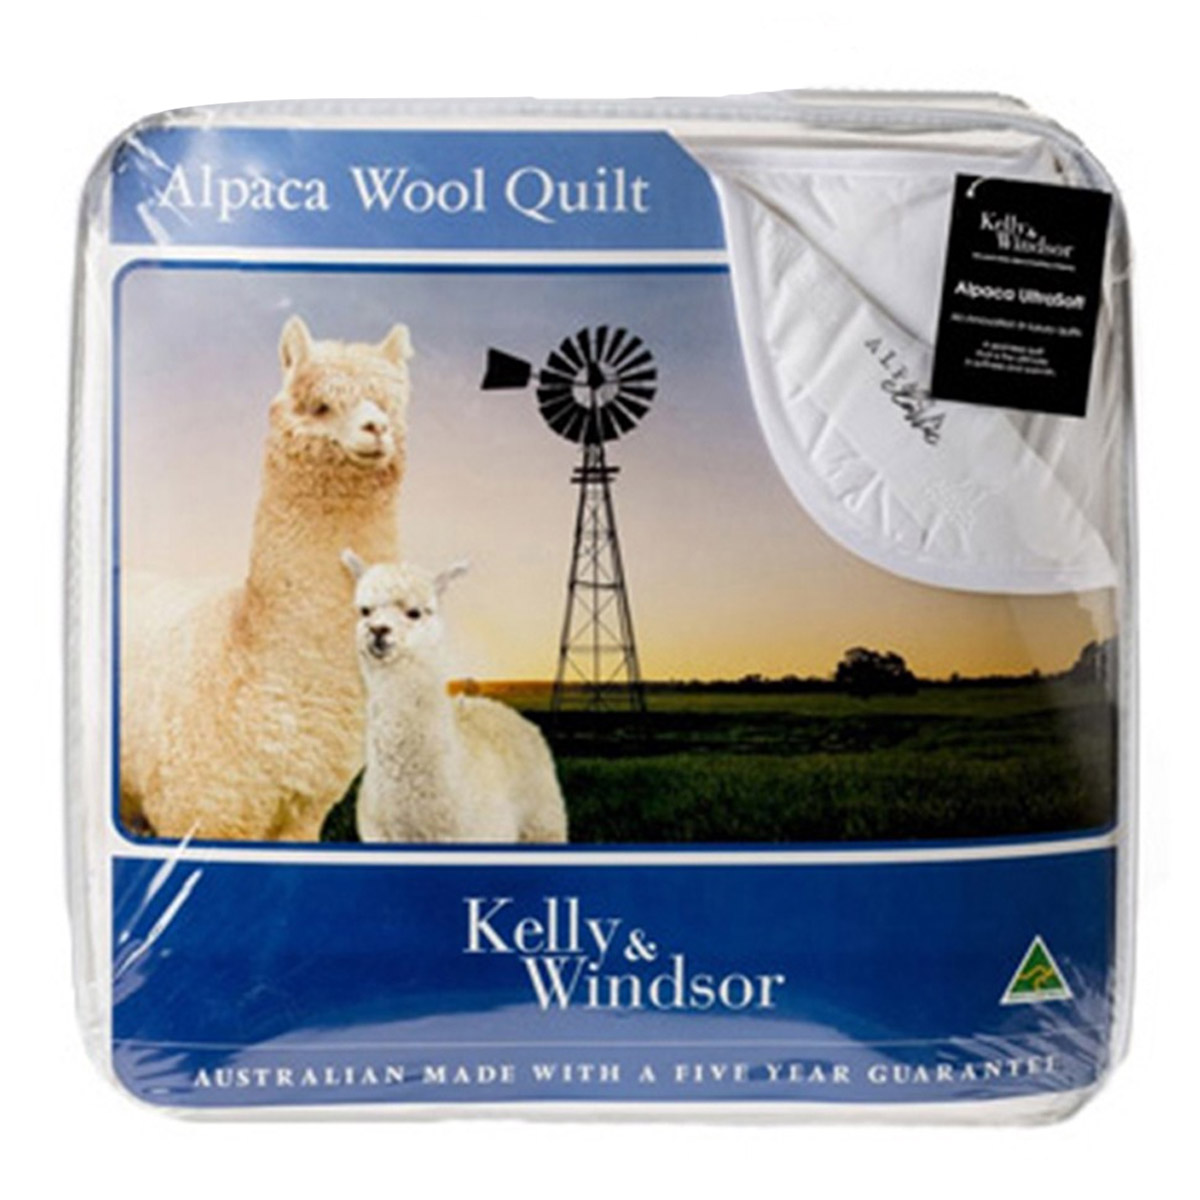 Kelly and Windsor Classic Blend Alpaca Wool Quilt